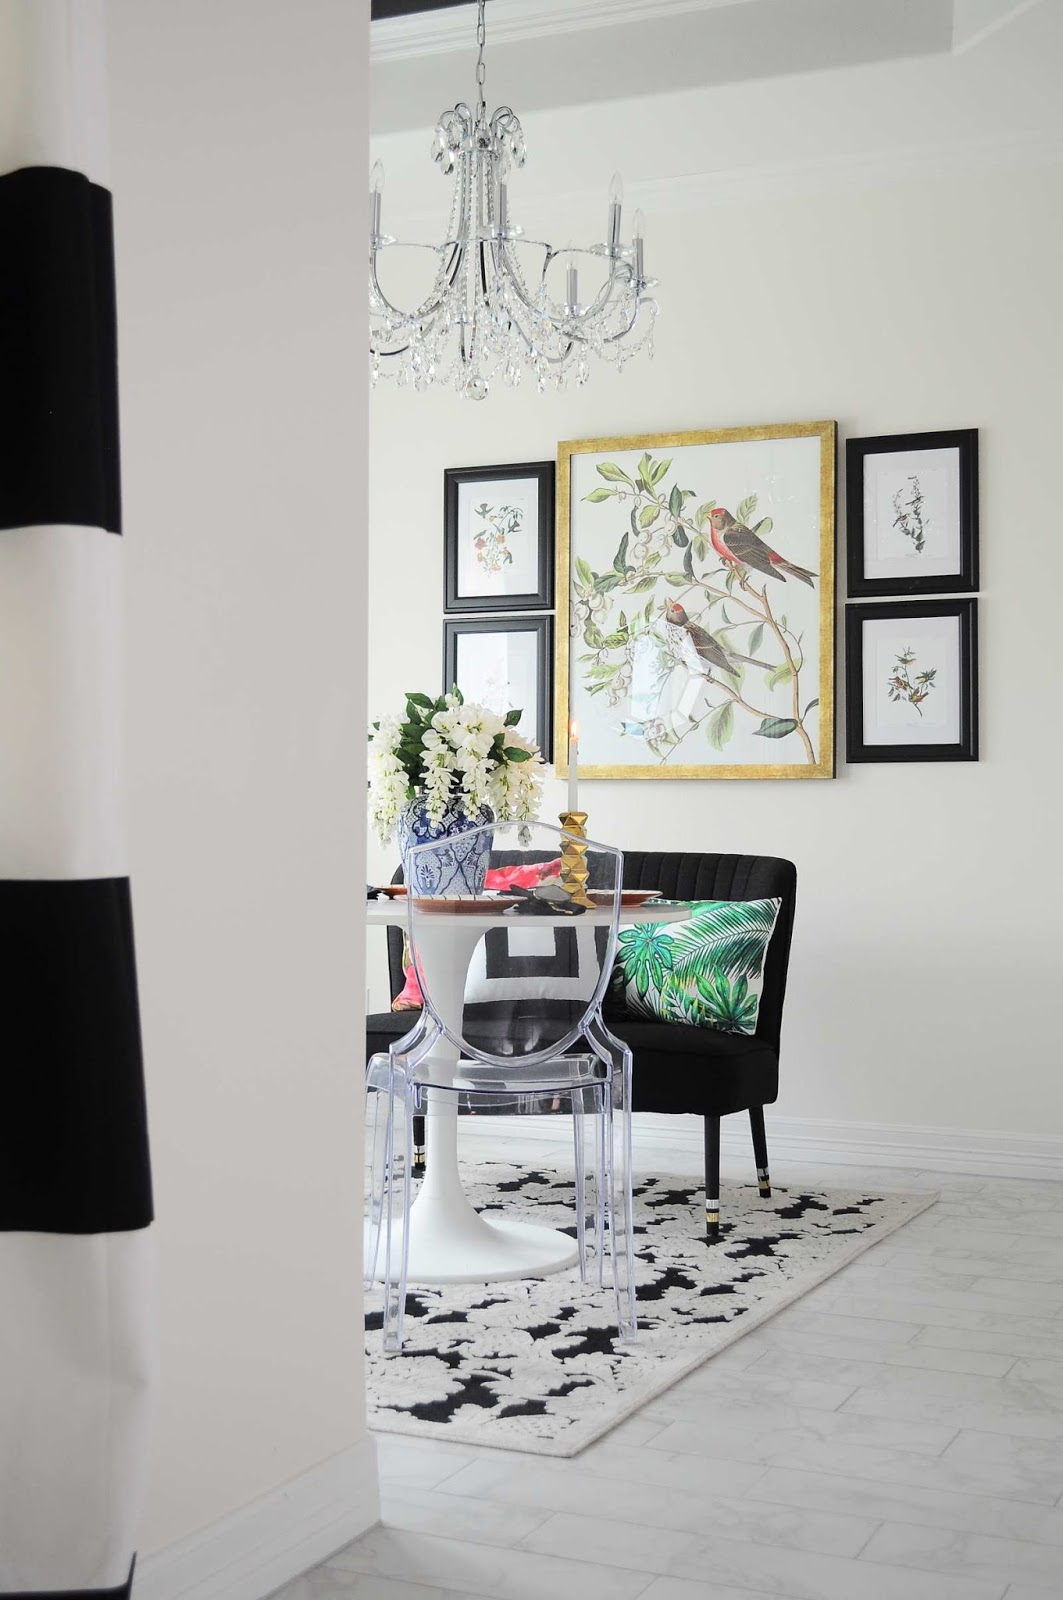 A $100 dining room makeover with black, white and gold decor and audubon accents. Lots of great ideas on how to decorate a home on a budget and make an impact. | #diningroom #diningroomdecor #smallspace #diningnook #breakfastnook #blackandwhite #chandelier #audubon #botanicals #botanical #budgetdecor #interiordesign